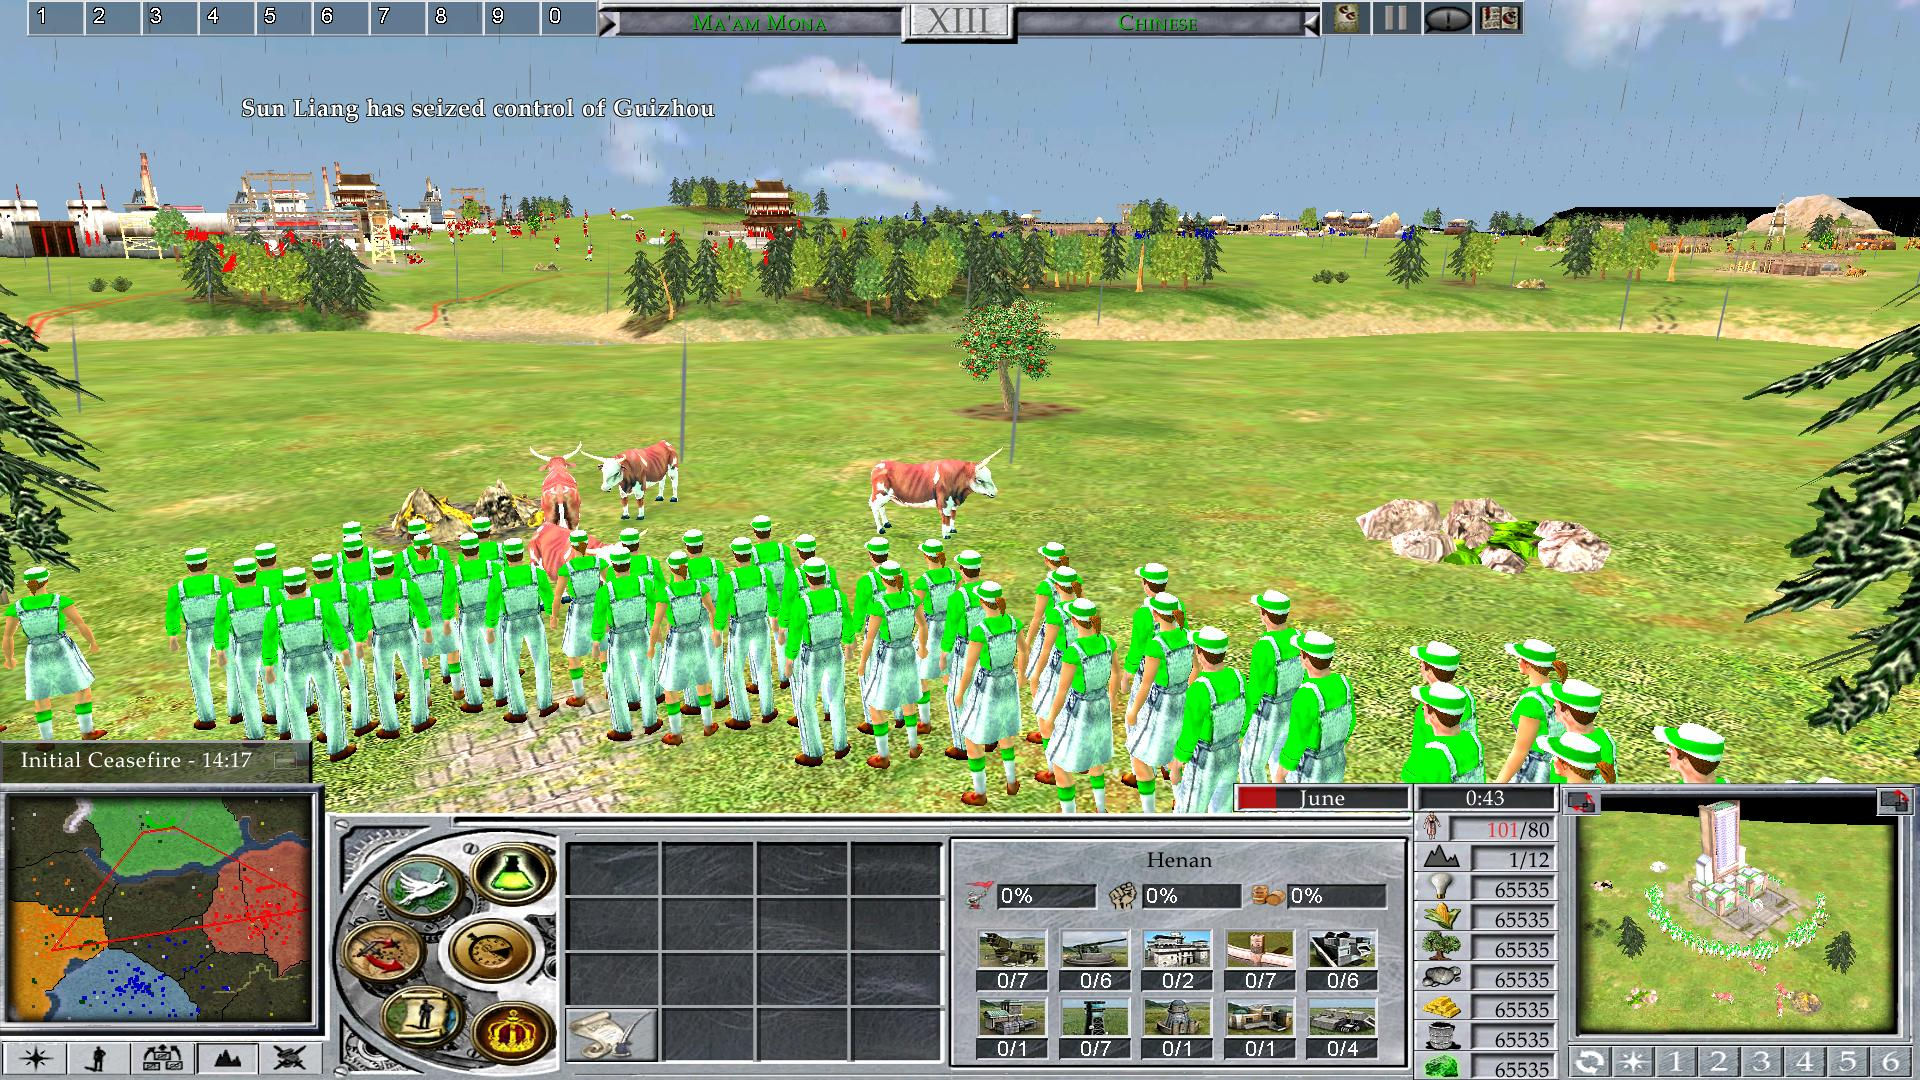 Ee2 ee2x empire earth ii unofficial patch 14 2013 forum2 unofficial patch 14 has been released for empire earth ii and the expansion pack empire earth ii the art of supremacy in 1 installer gumiabroncs Images